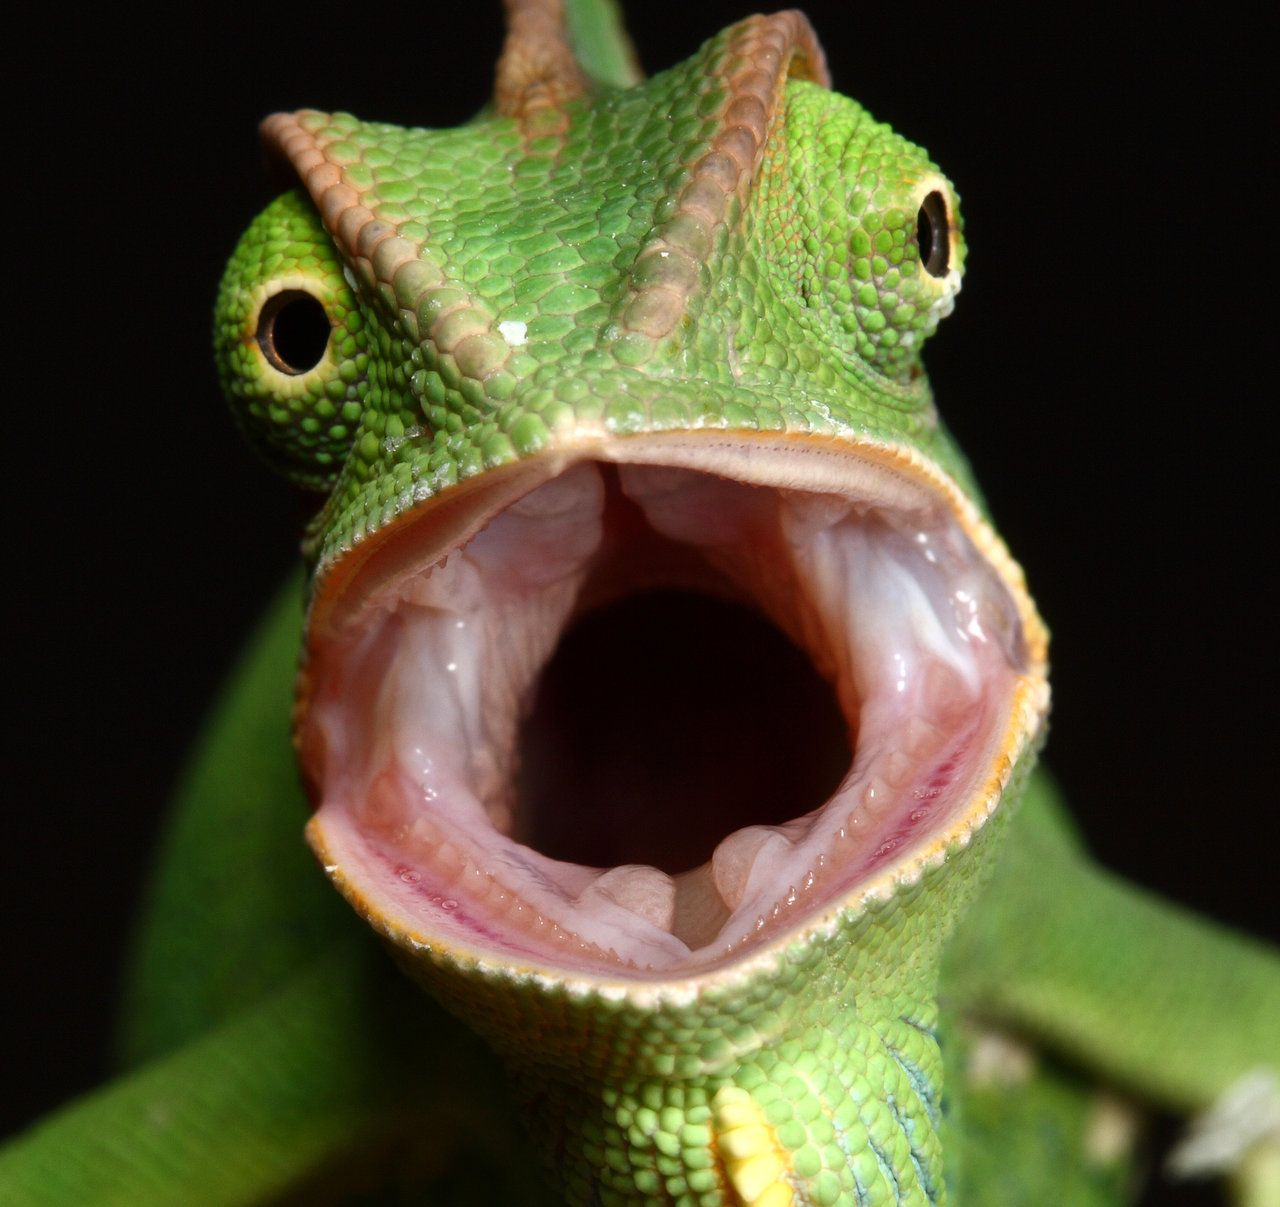 9075f277daa72e23a897f59824c3378a - How To Get A Chameleon To Open Its Mouth